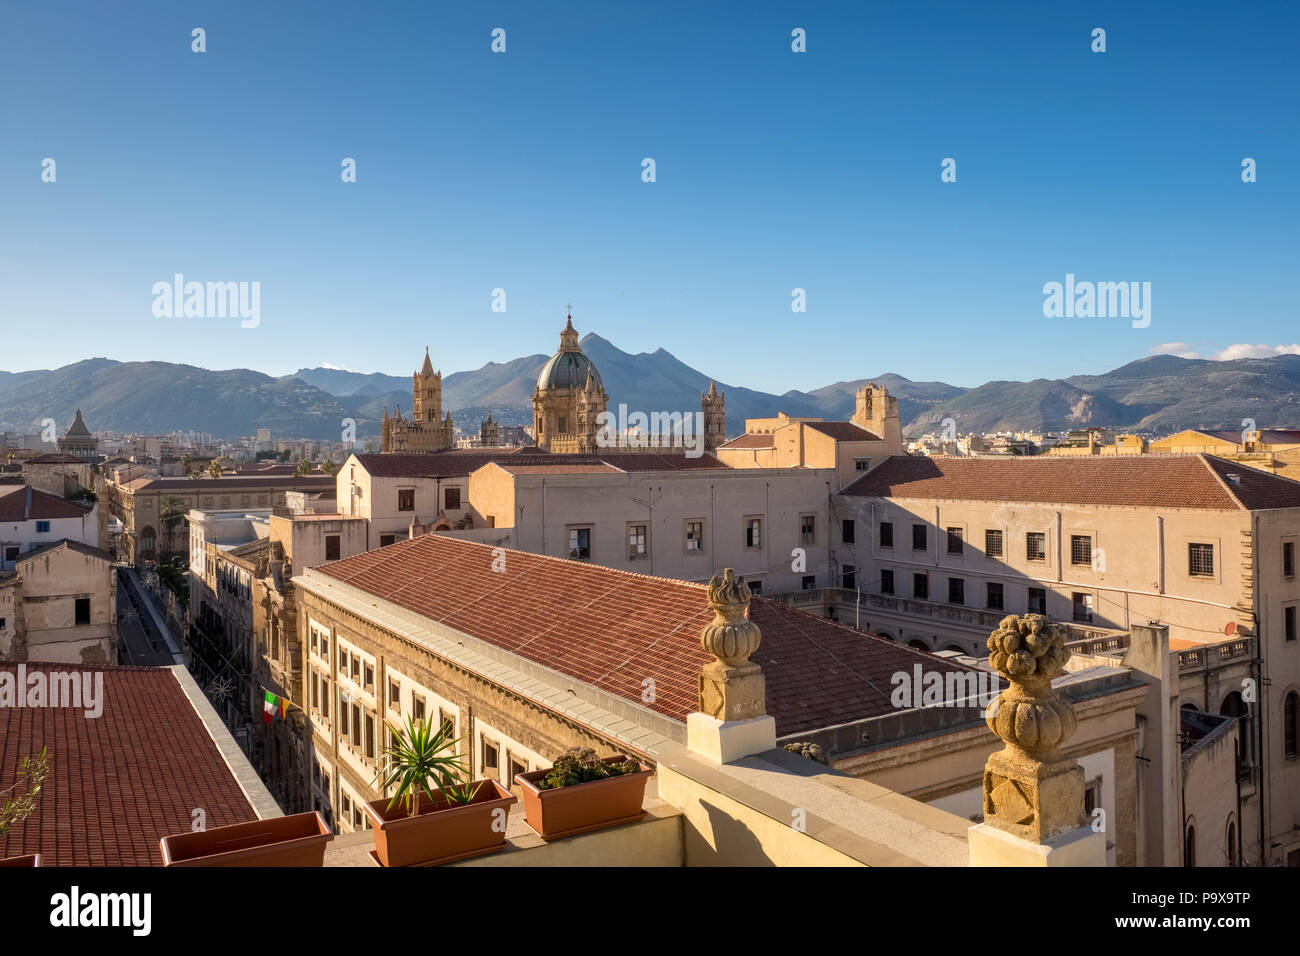 Palermo skyline, Sicily, Italy, Europe with the mountains behind - Stock Image